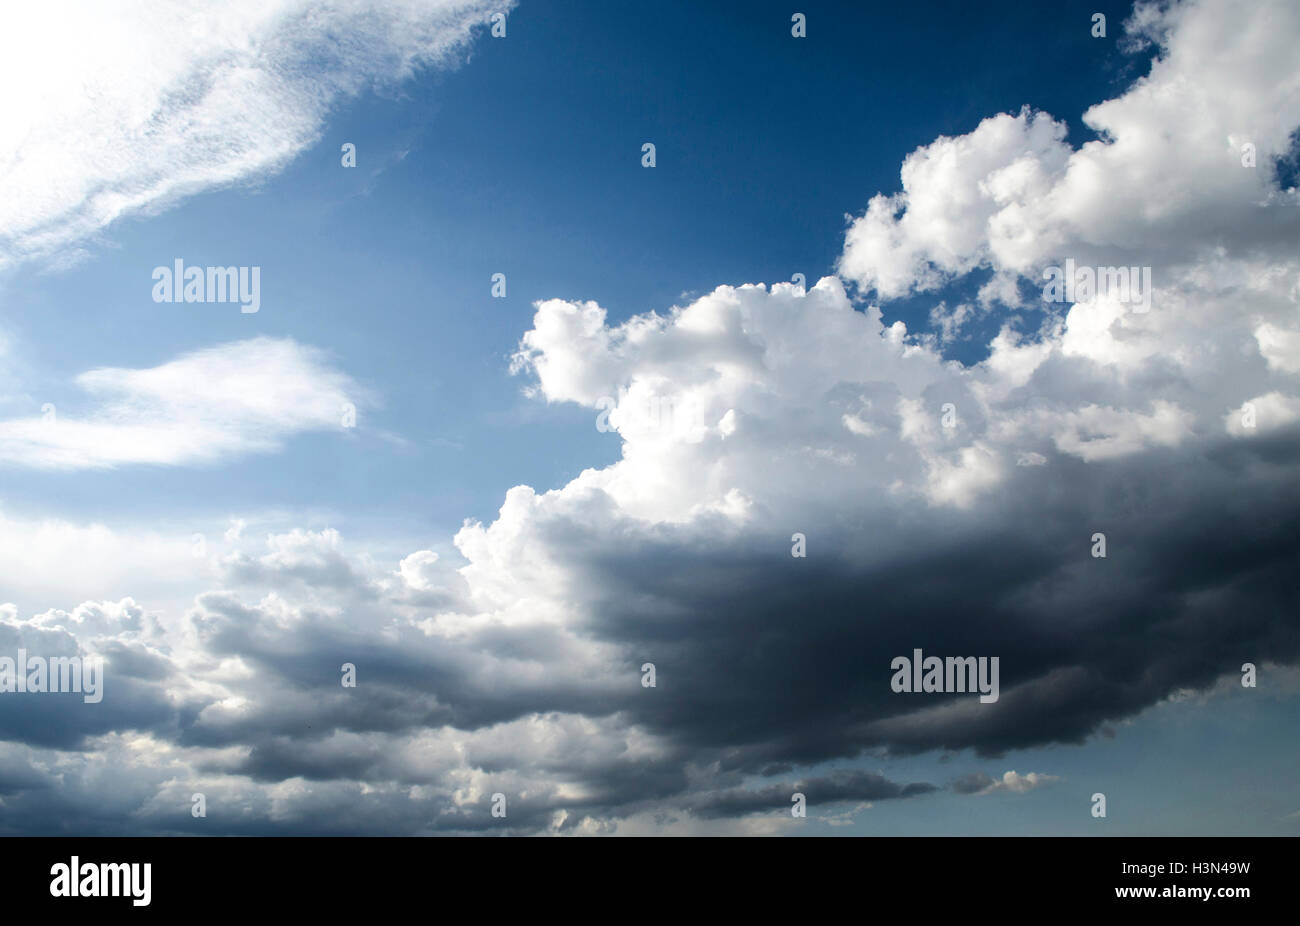 Dark clouds before a hurricane on a clear sunny day - Stock Image